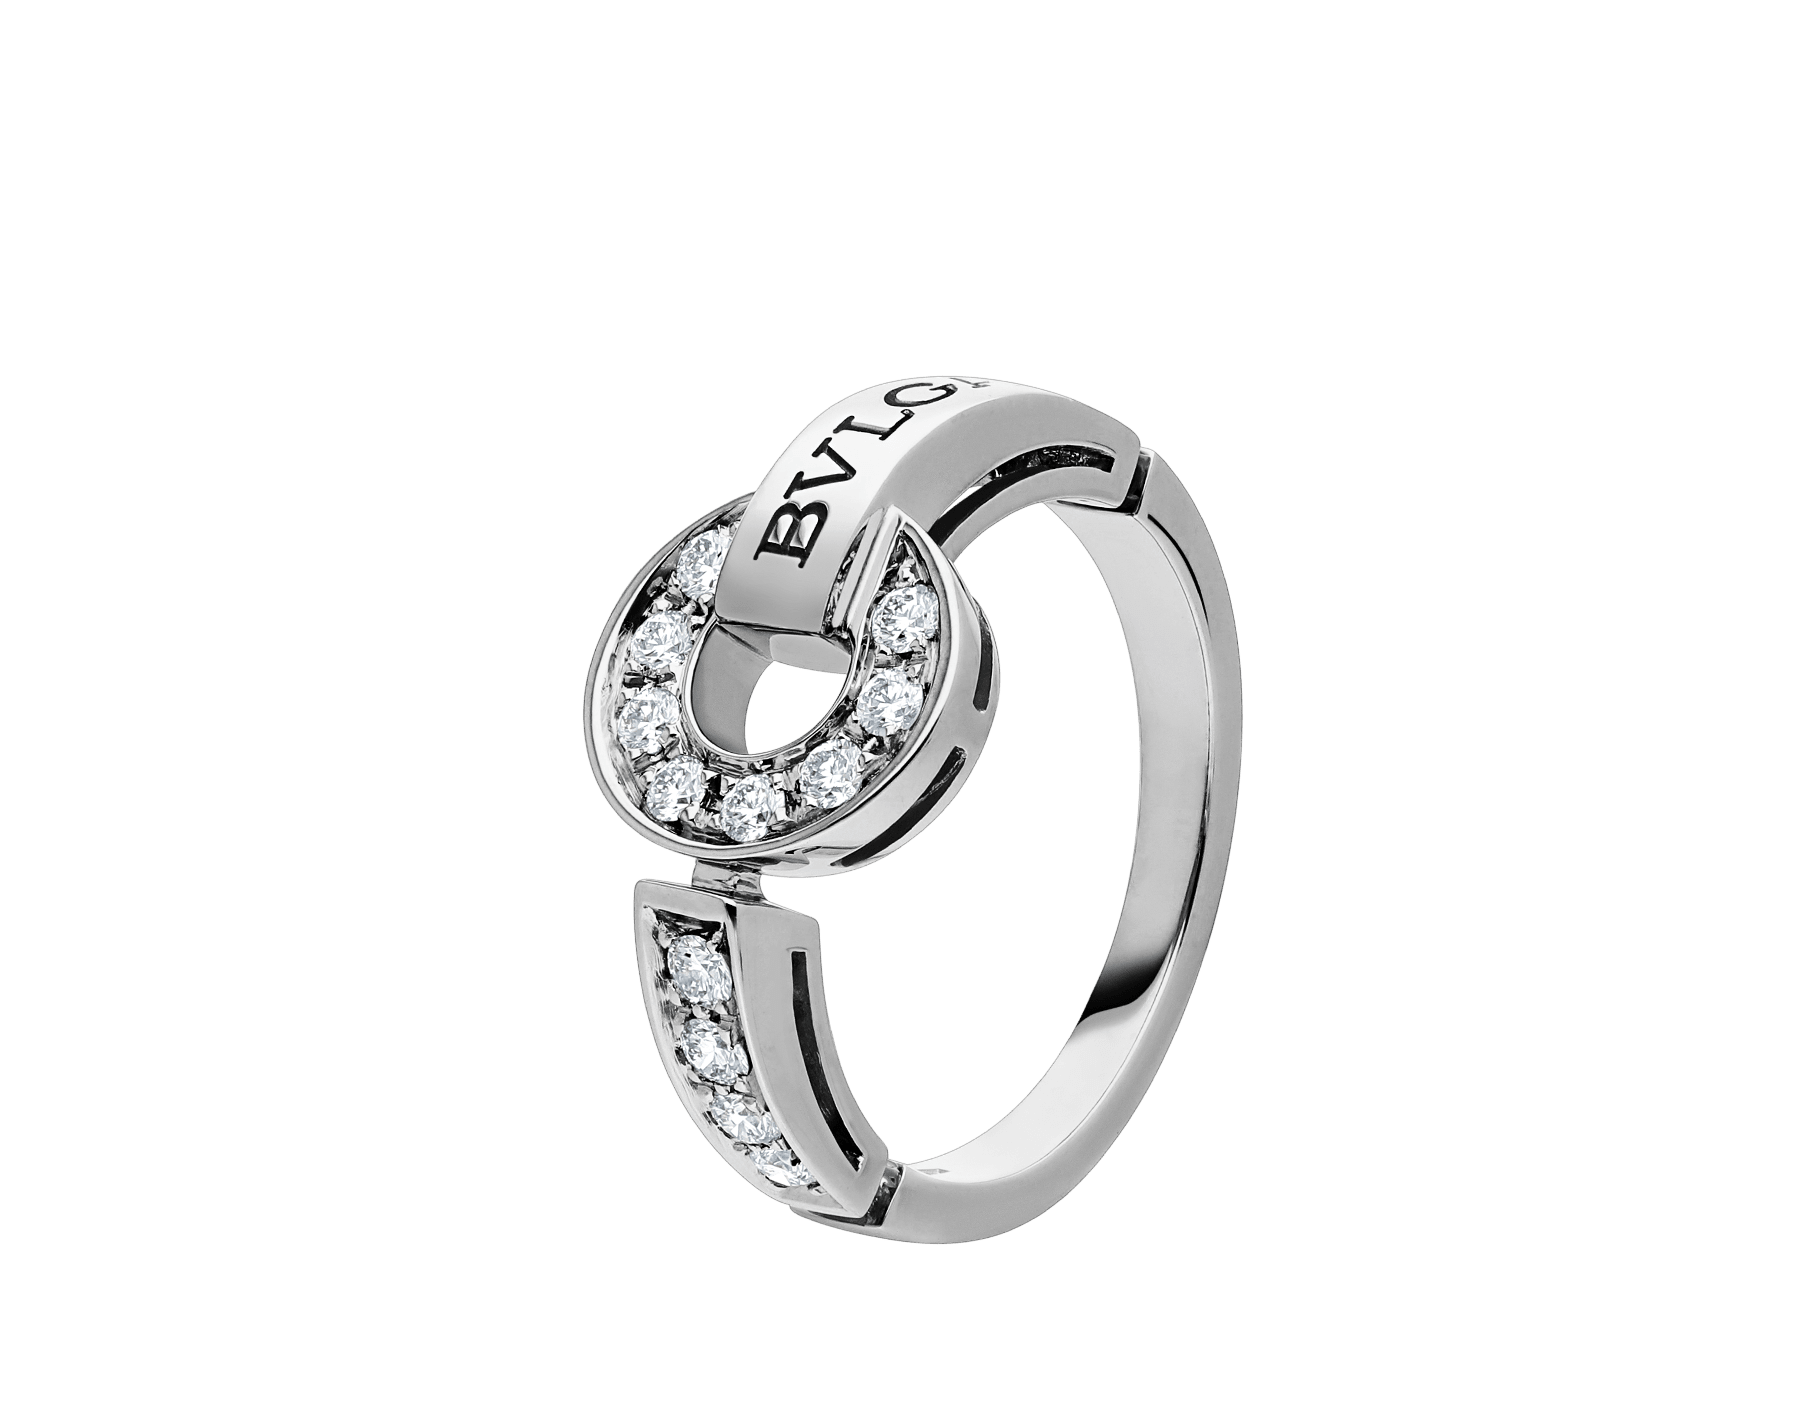 BVLGARI BVLGARI 18 kt white gold ring set with pavé diamonds AN854619 image 1